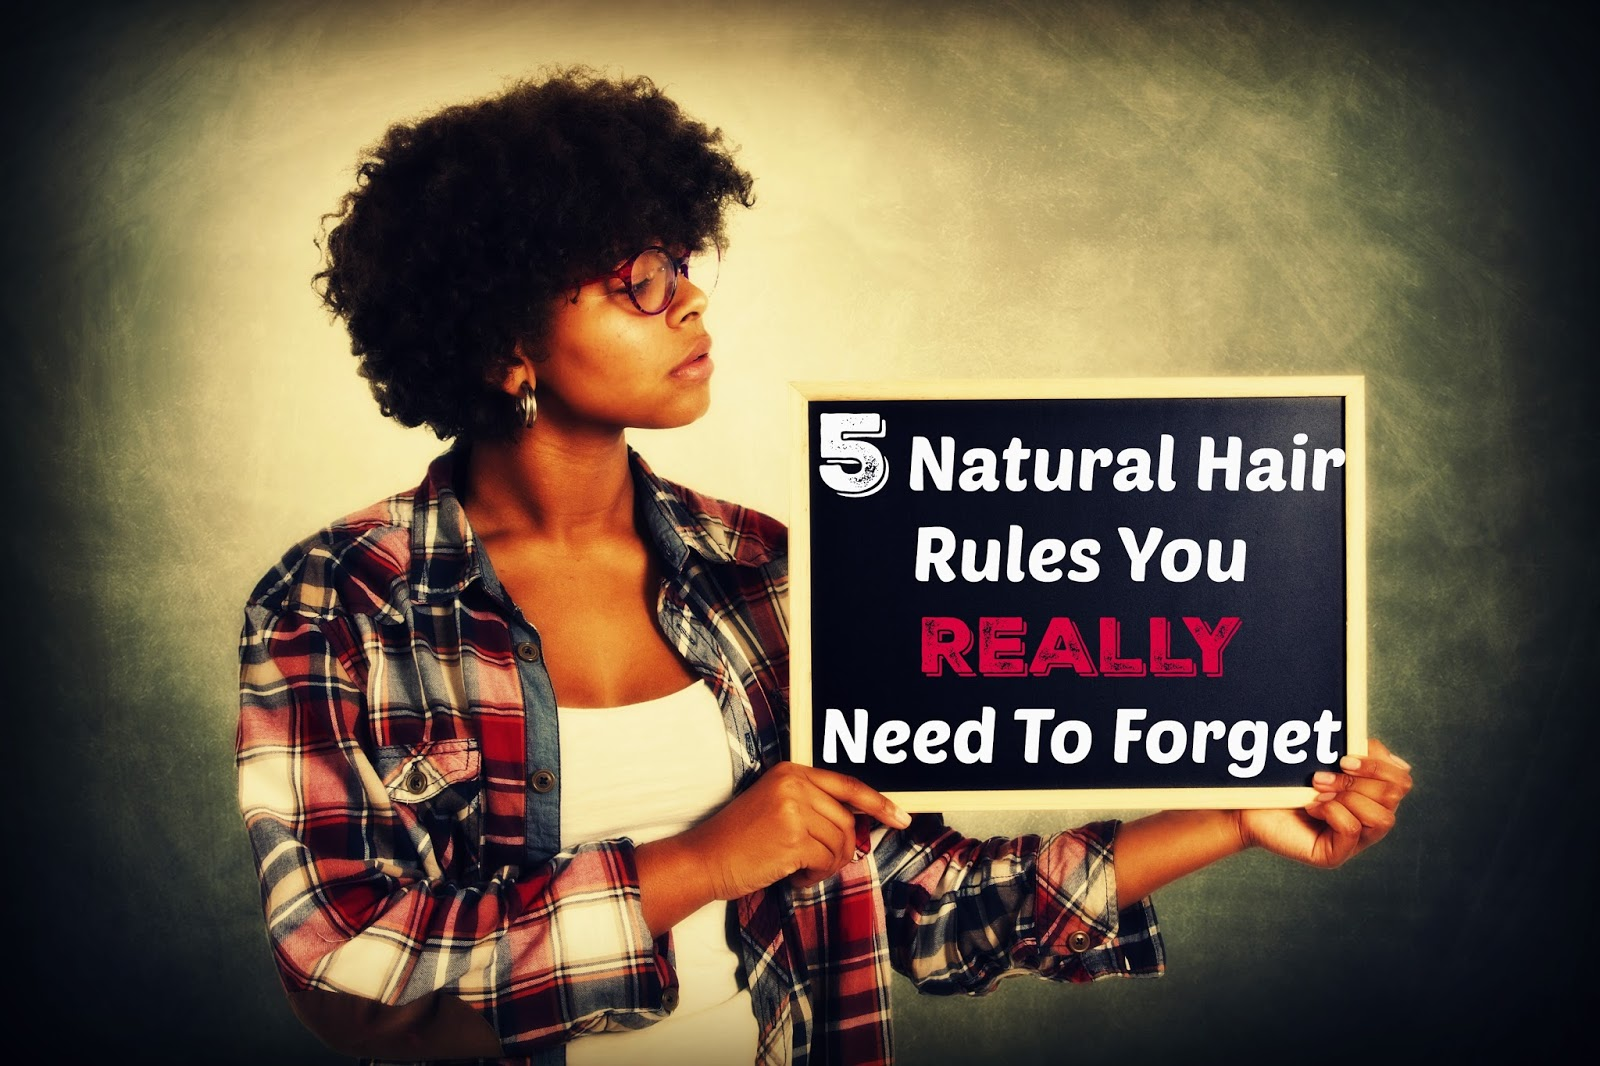 5 Natural Hair Rules You REALLY Need To Forget